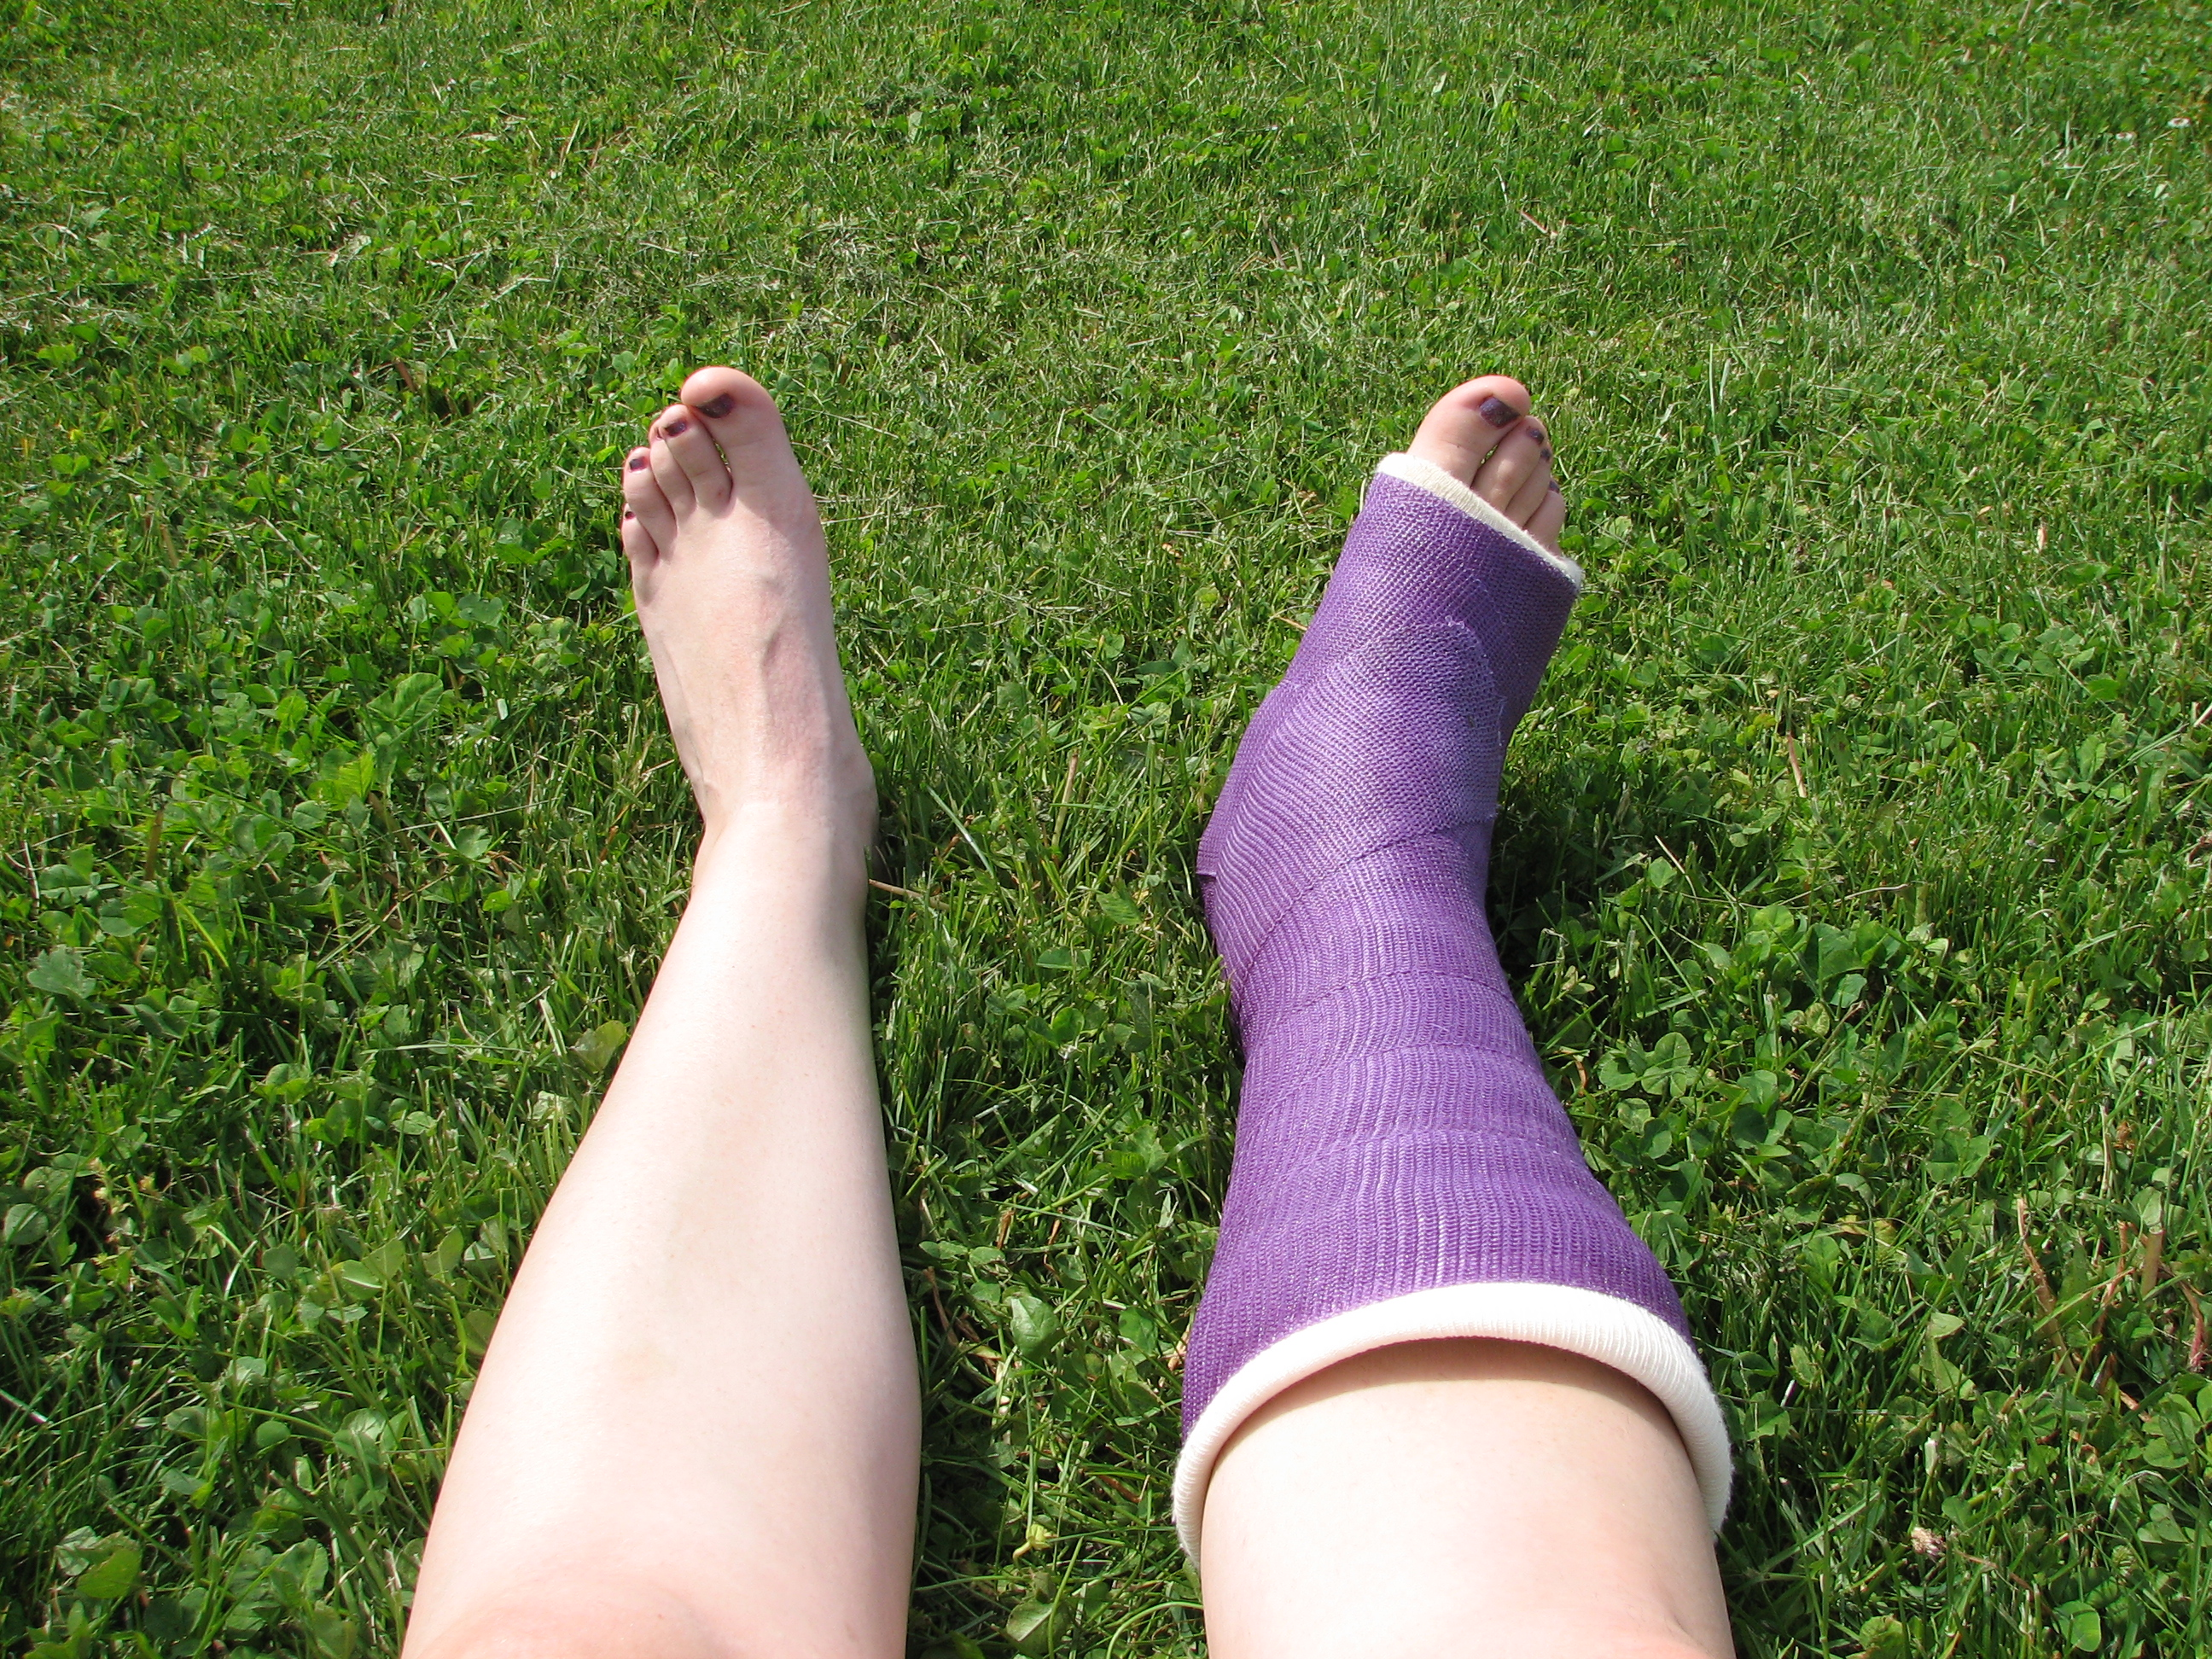 How much does it really cost to heal your broken foot?